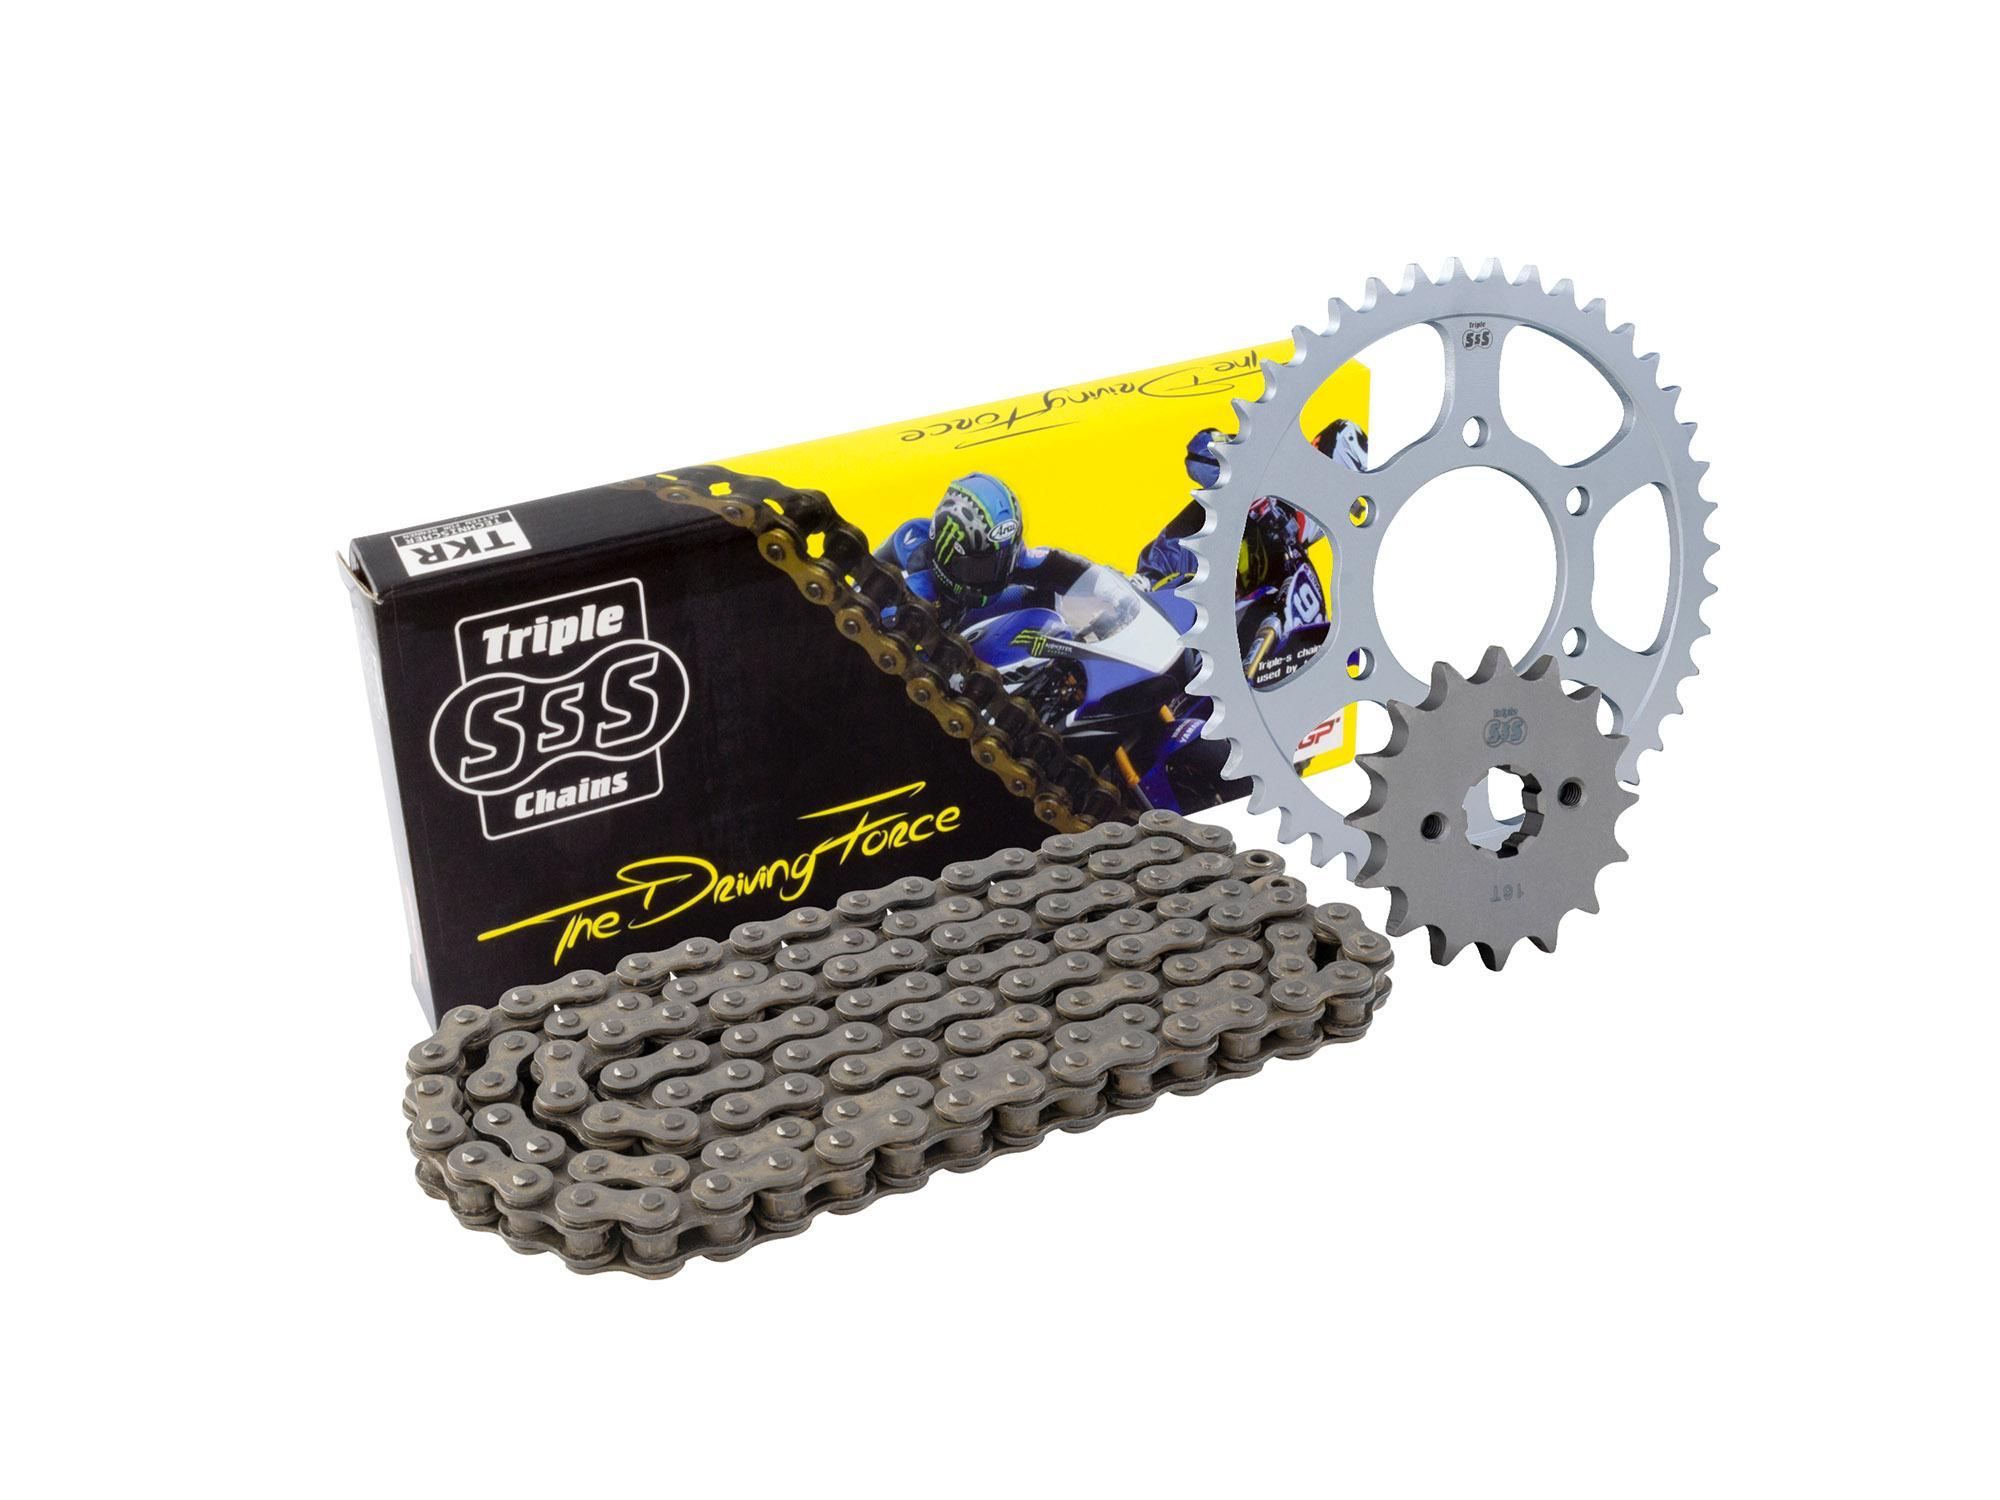 Suzuki DR-Z400 E K1-K7 01-07 Chain & Sprocket Kit: 14T Front, 47T Rear, HD O-Ring Black Chain 520H 112 Link